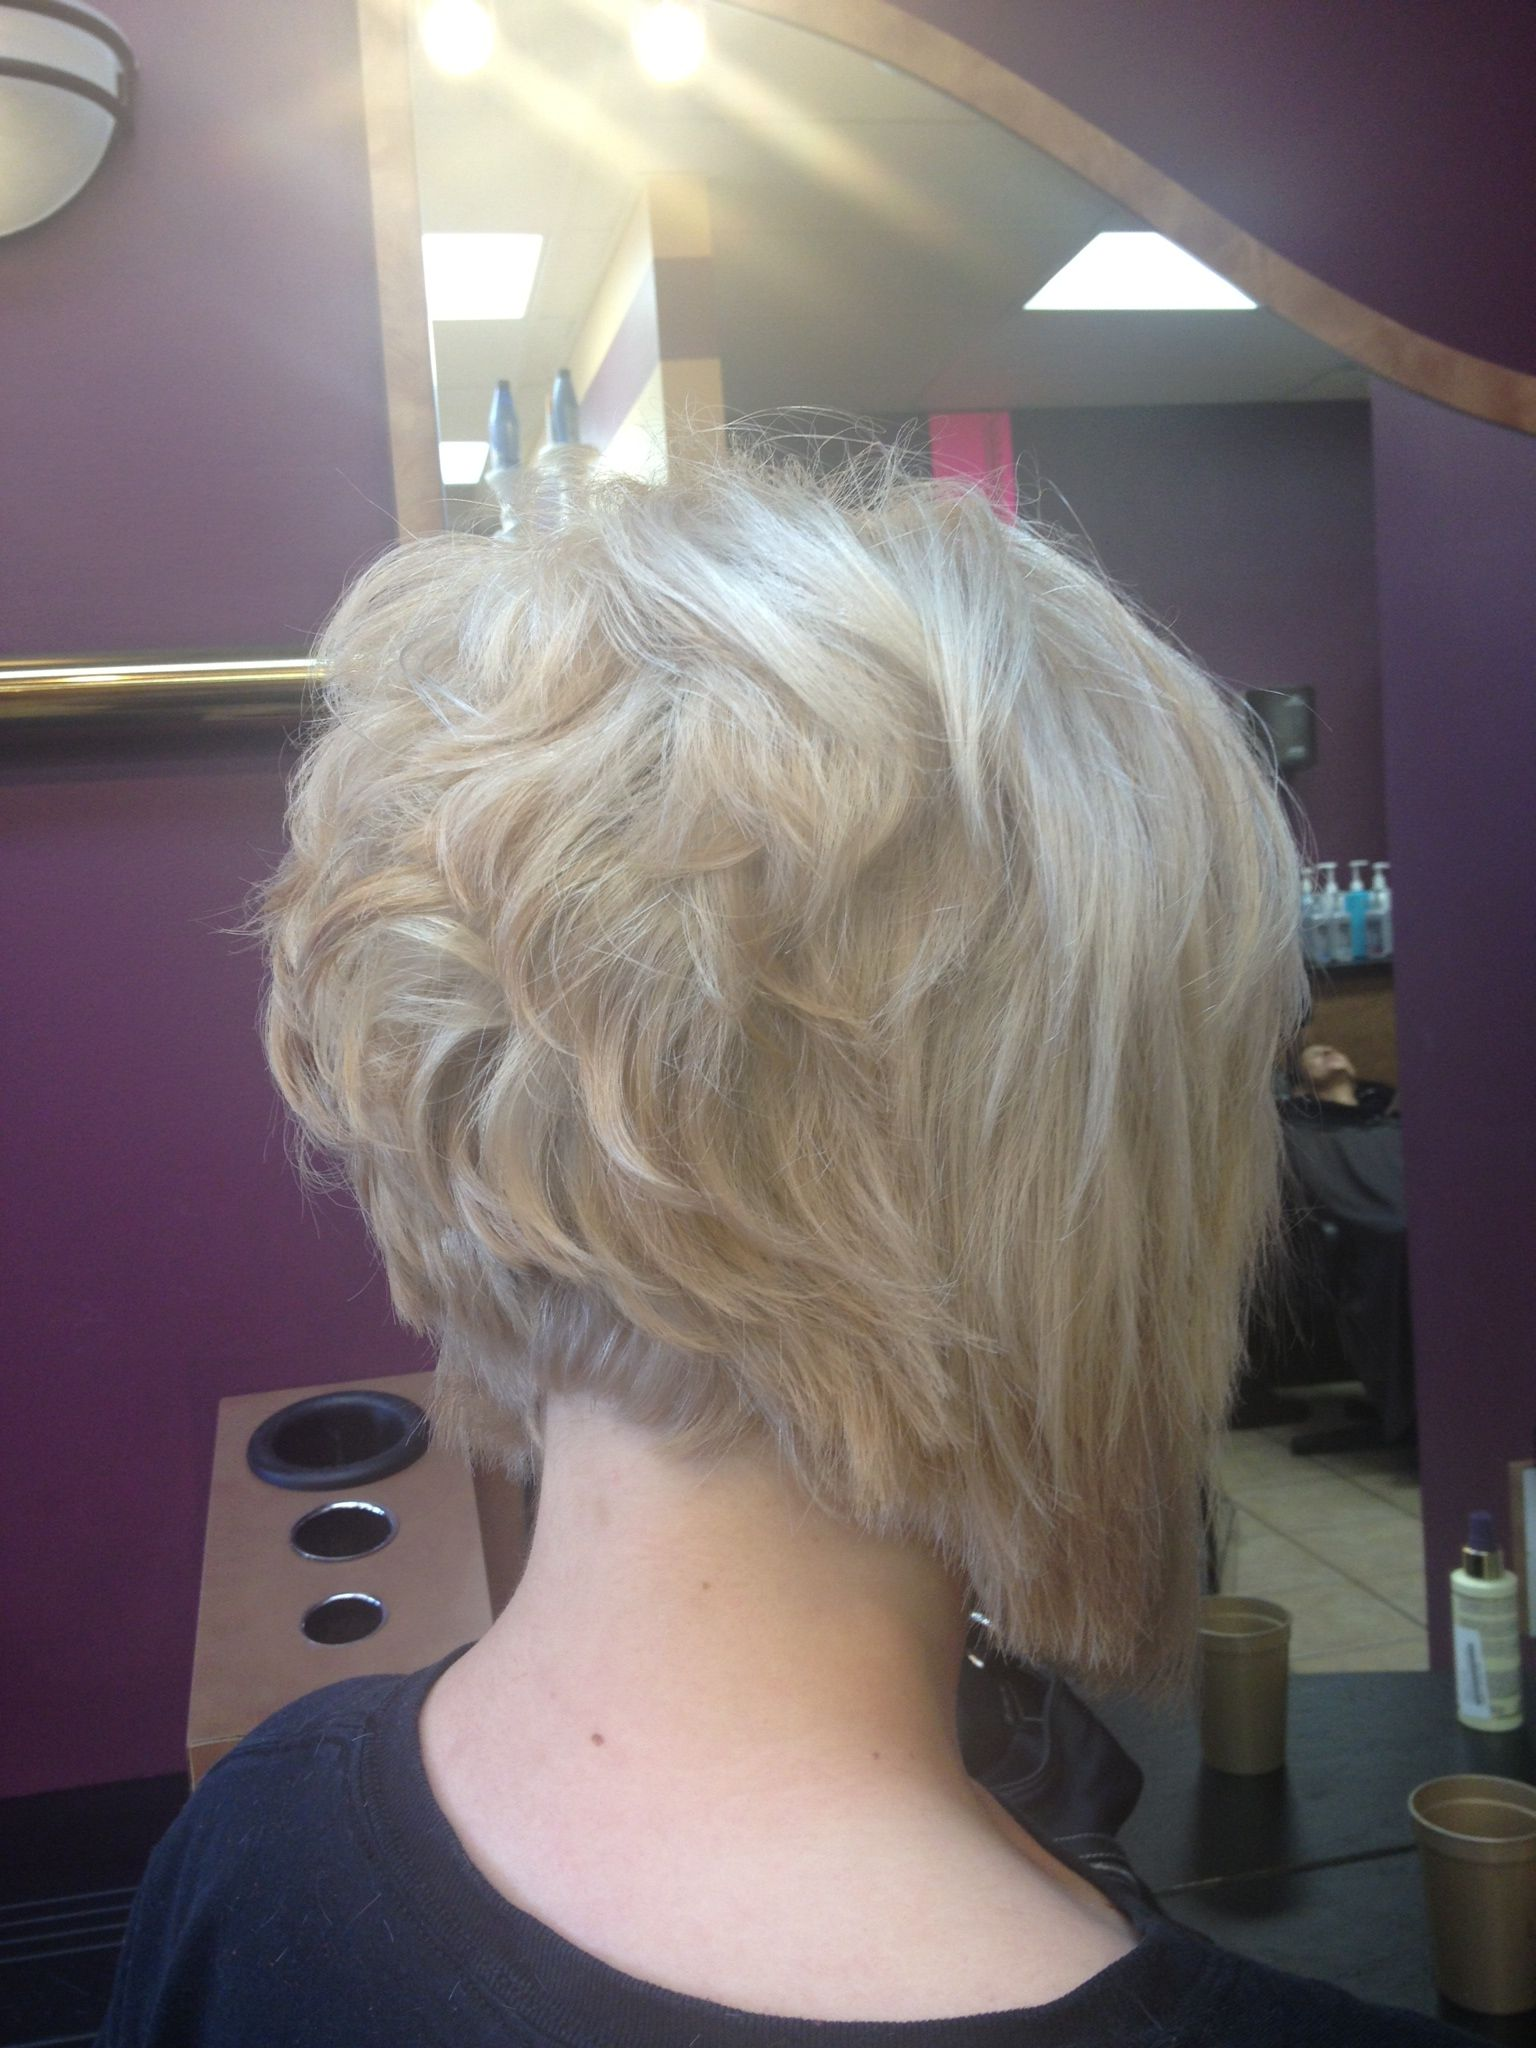 Short stacked bob with platinum blonde color